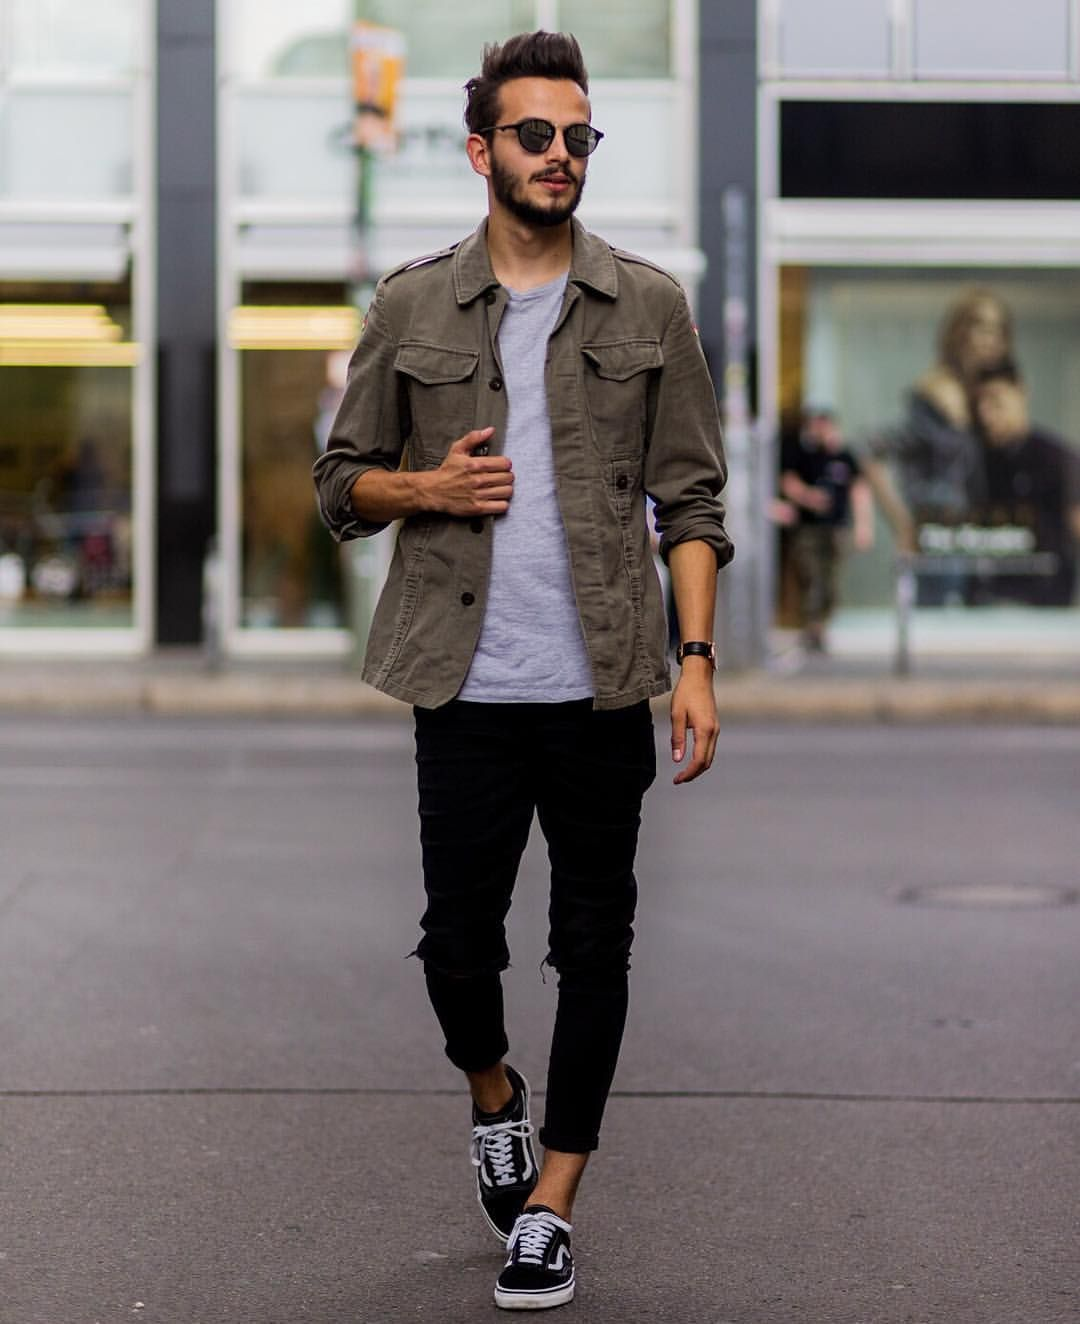 See This Instagram Photo By Blvckxkev 663 Likes Men Outfits Pinterest Instagram Man